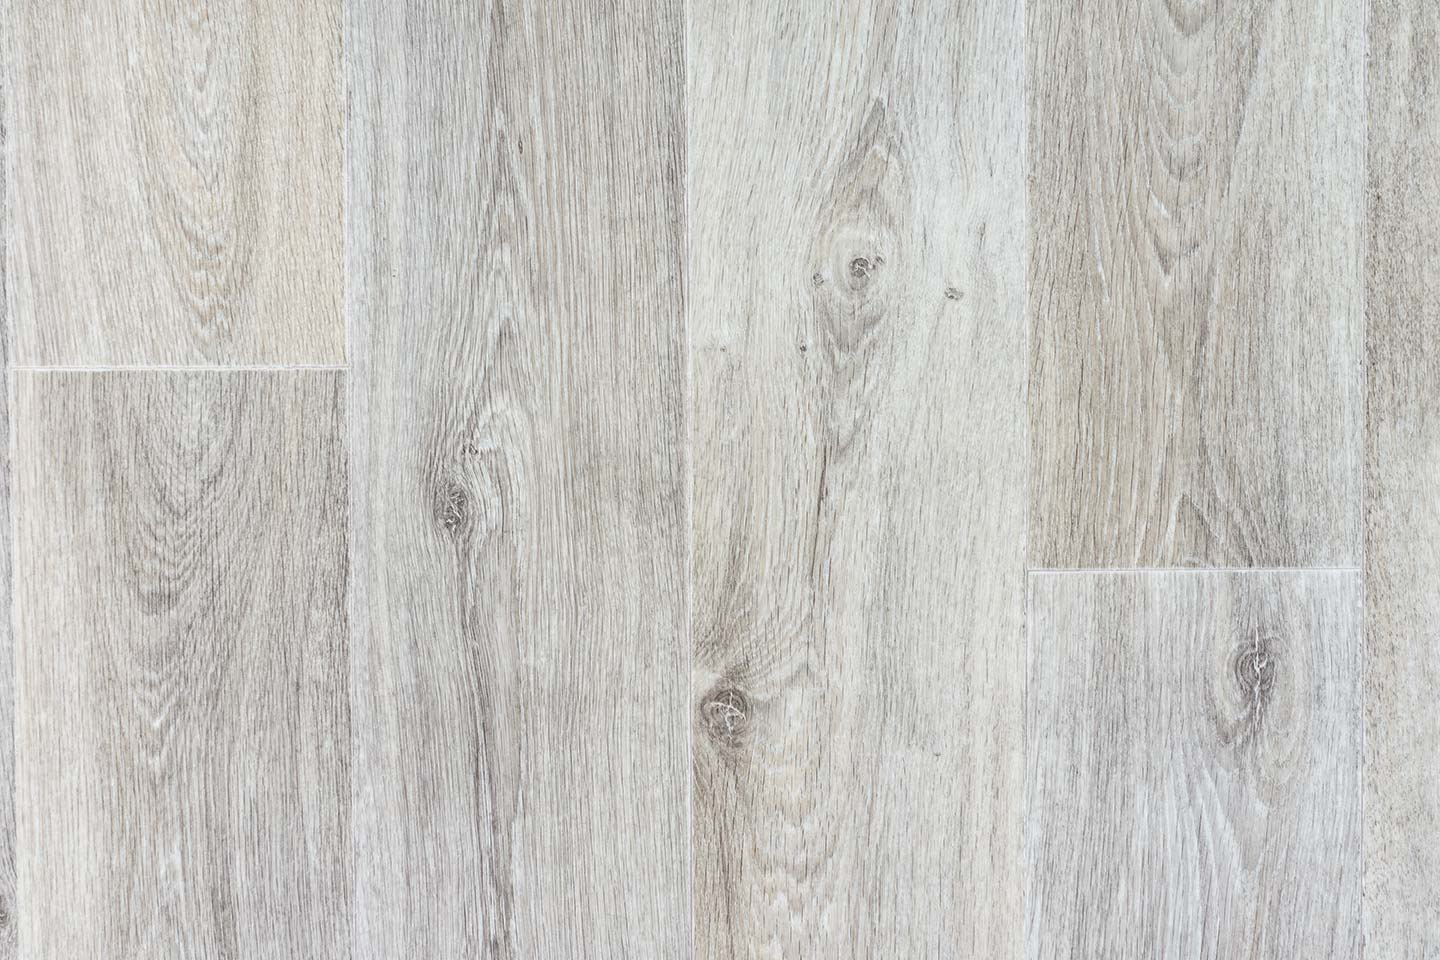 White-Wash-Flooring